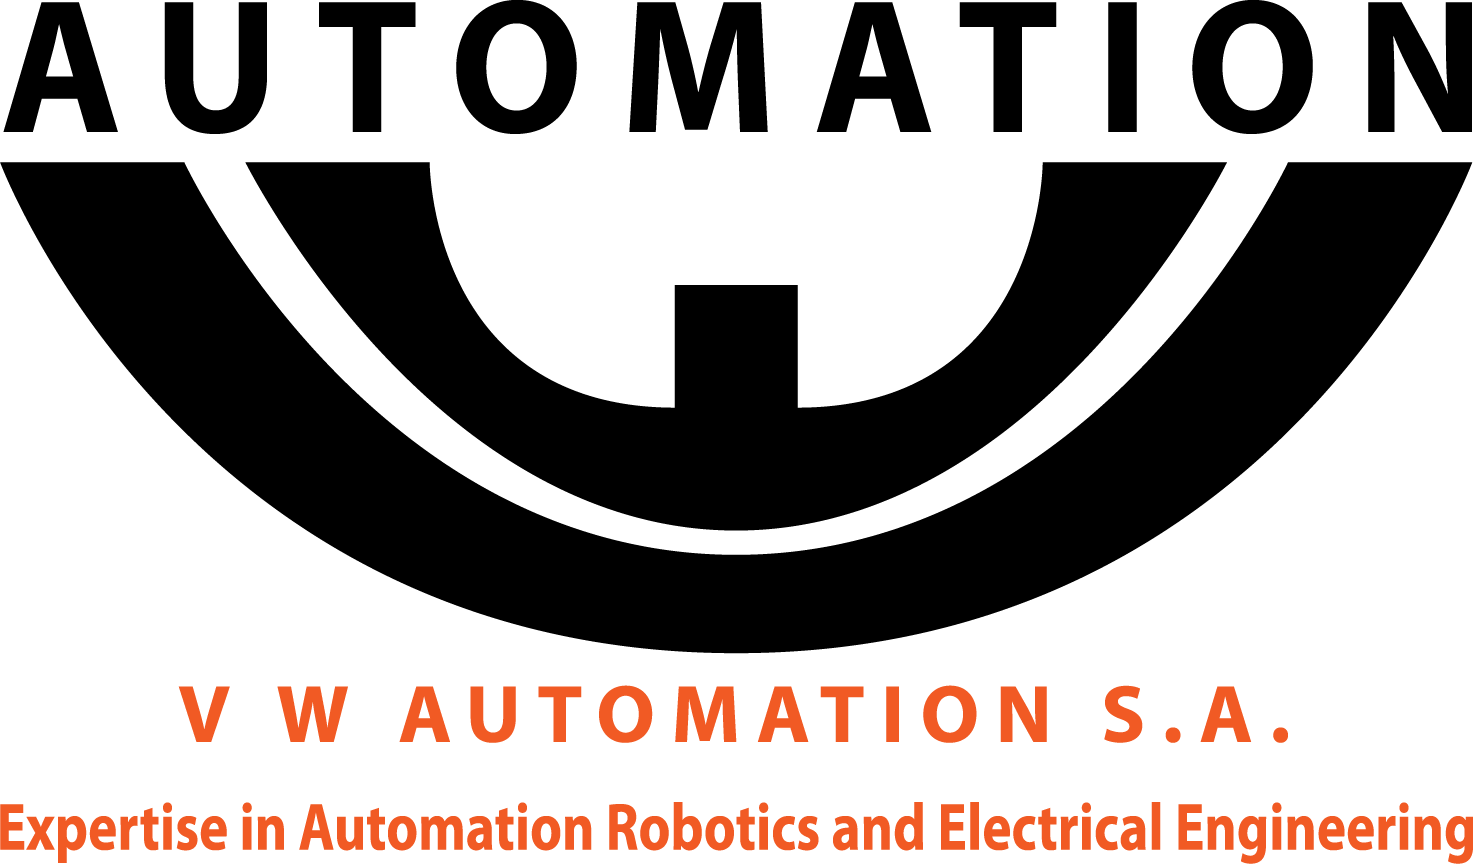 V W Automation S.A. | Automation | Robotics | Electromecanics | Electric control and power panel